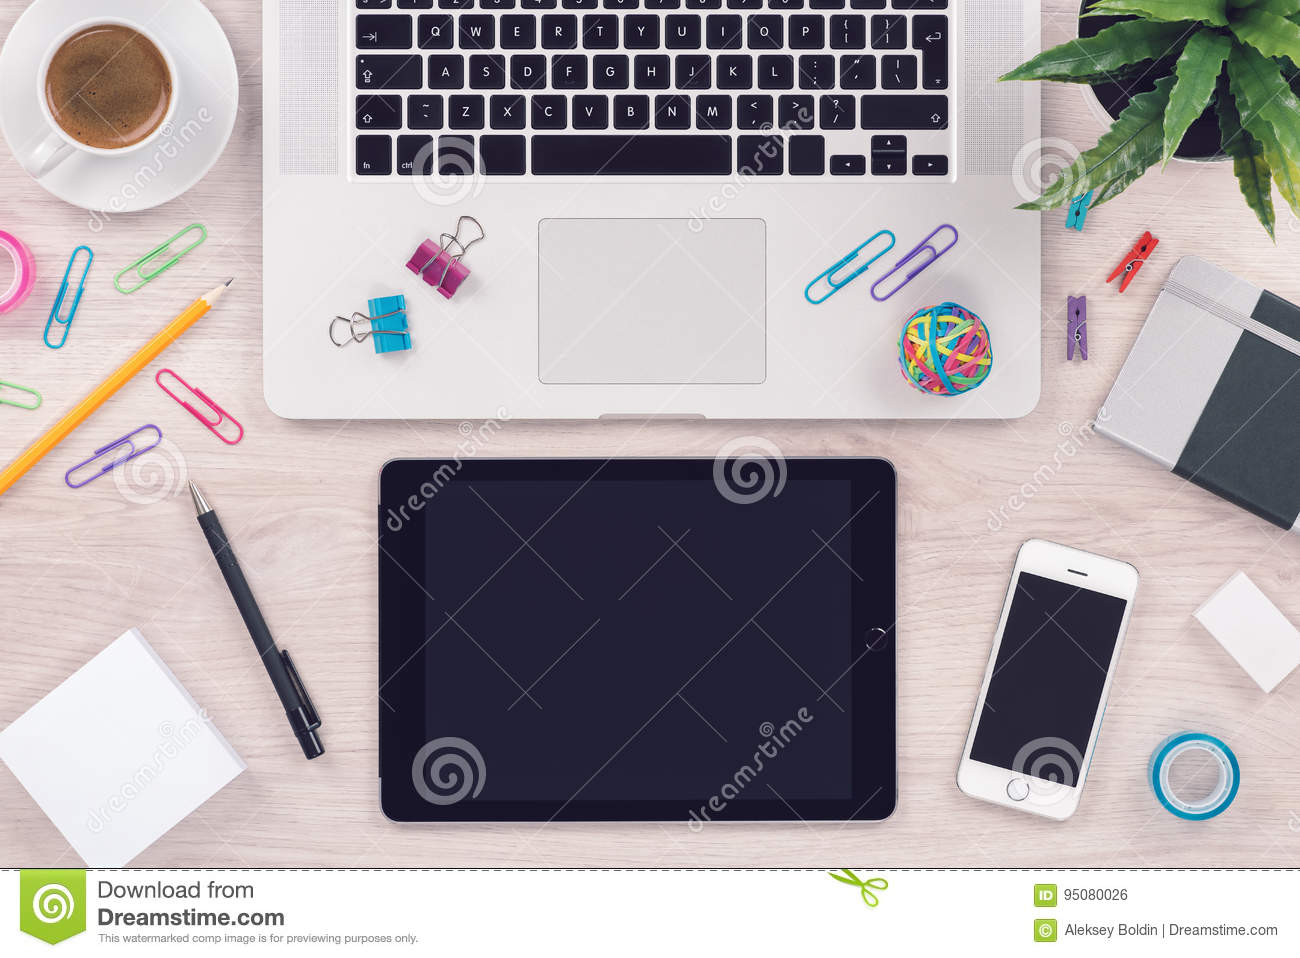 Office desk table workplace with macbook laptop keyboard, ipad tablet pc and iphone smartphone top view